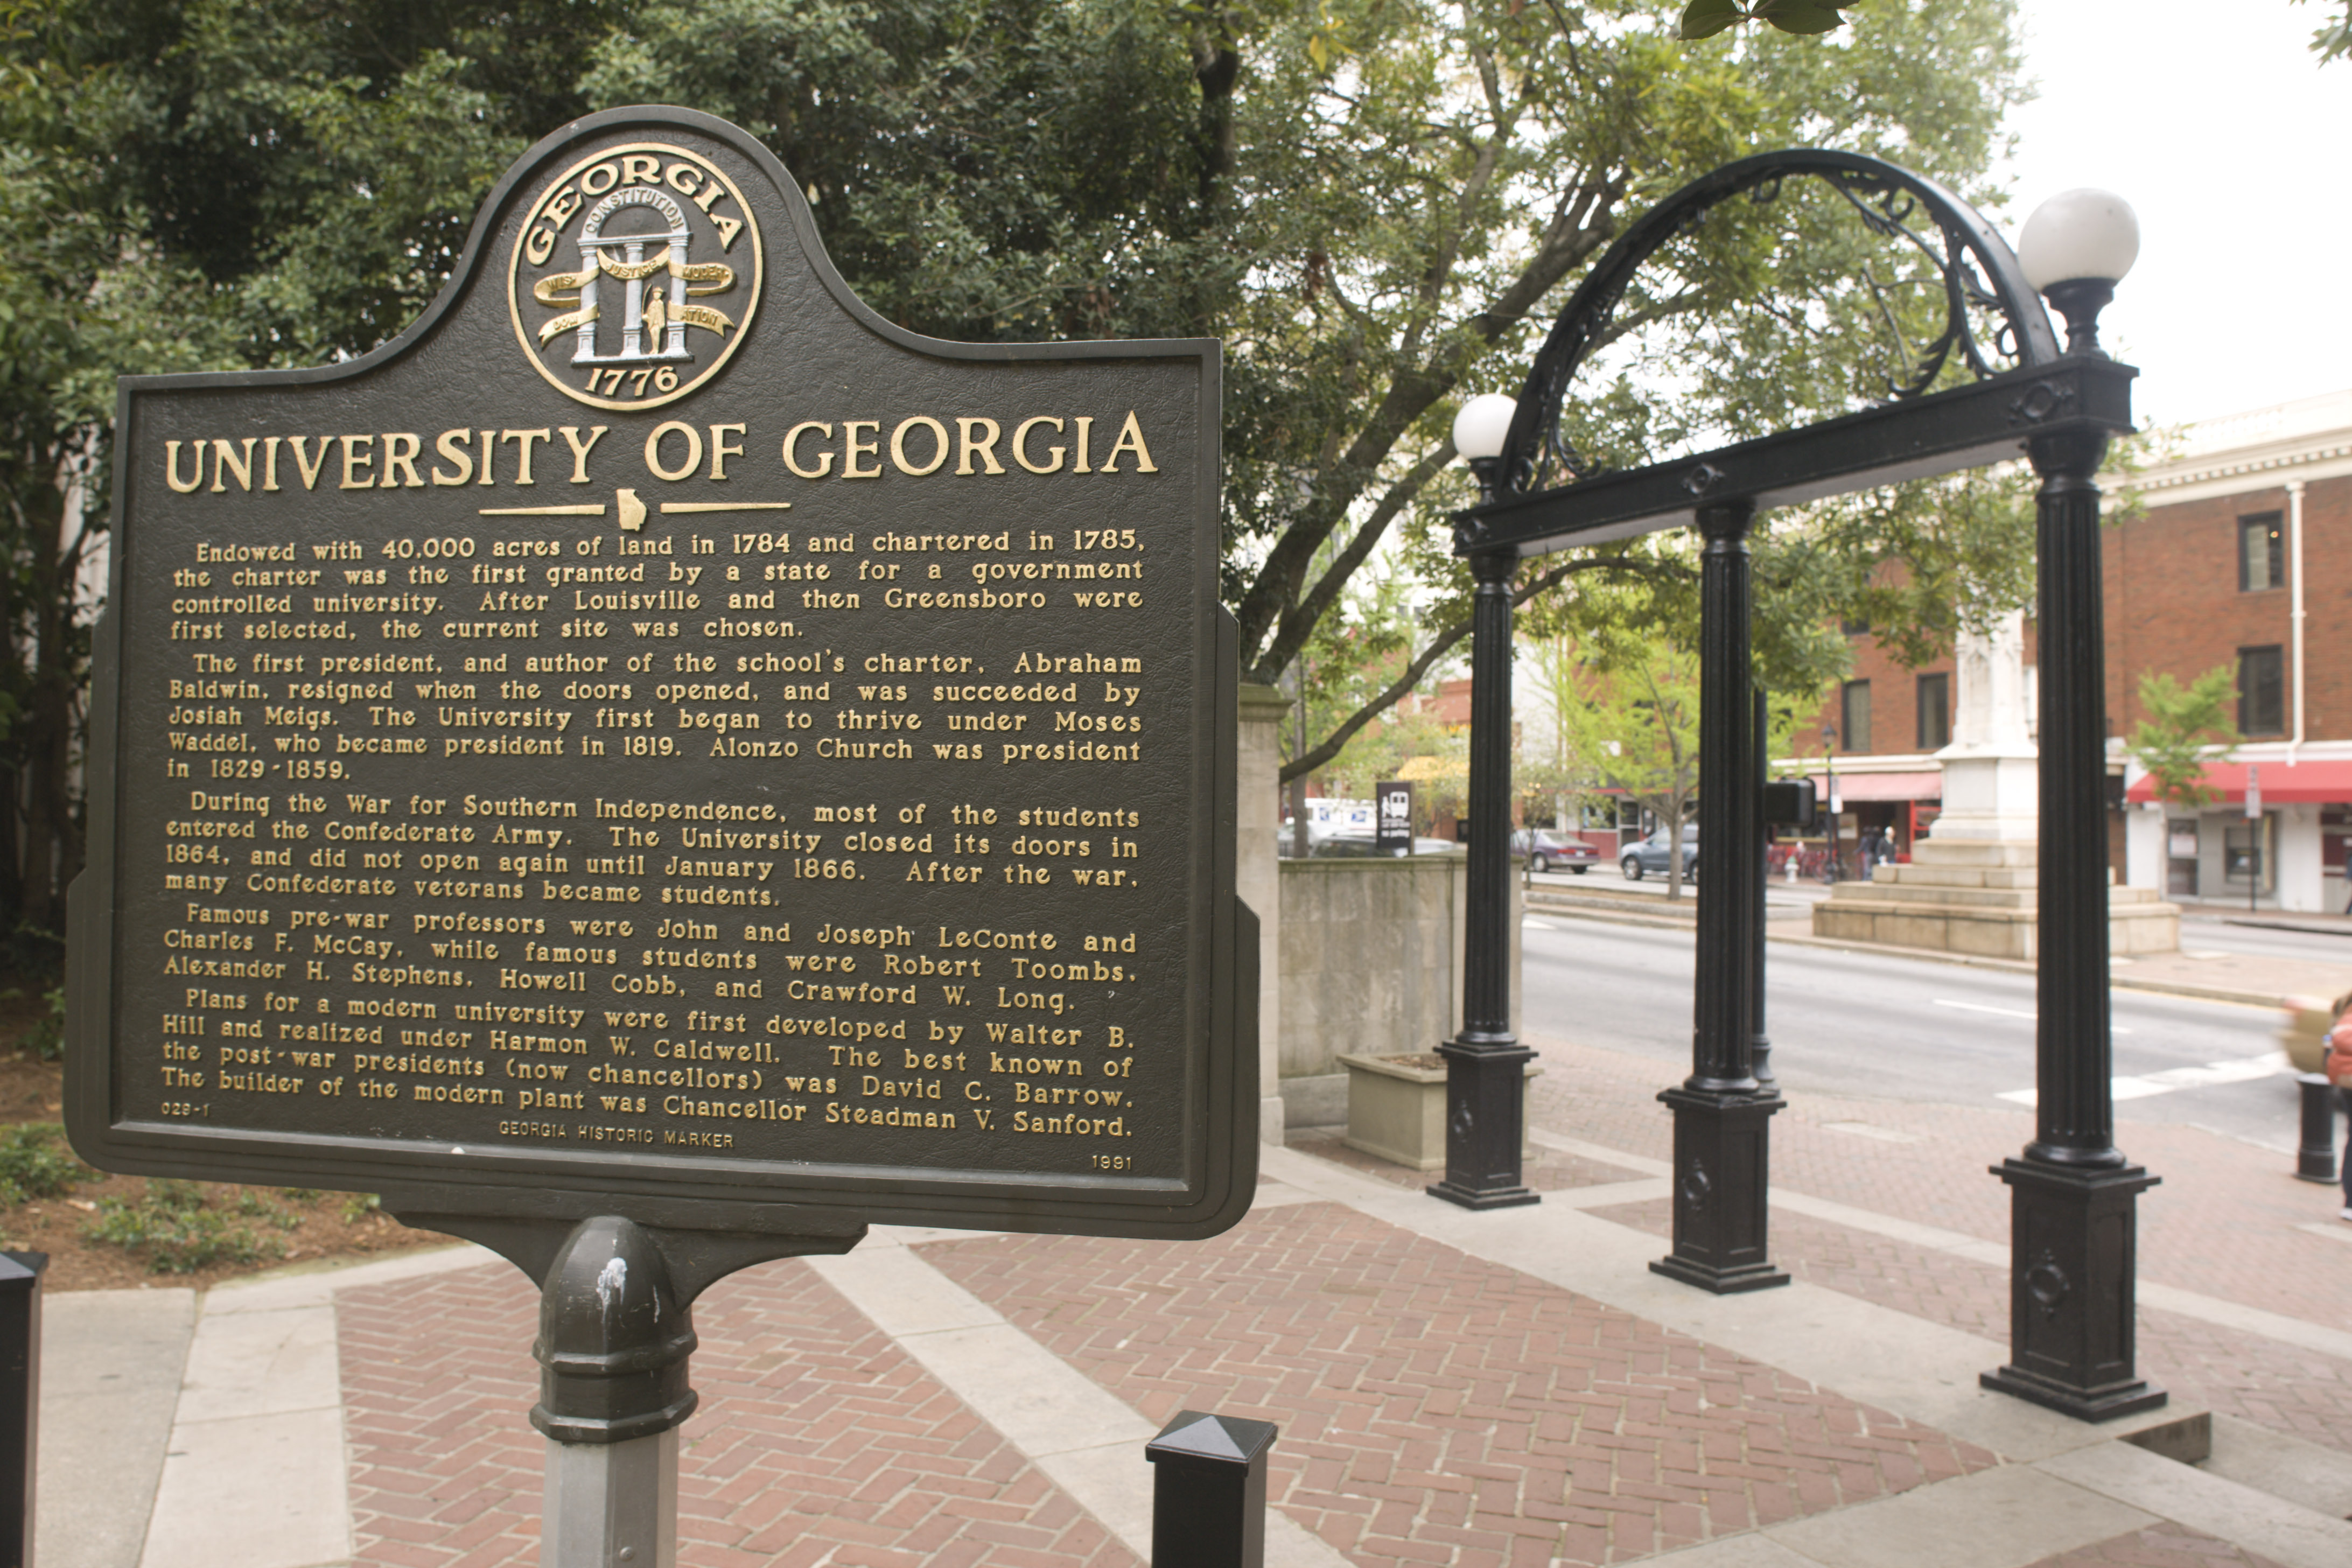 Close-up view of the Georgia Arch on the University of Georgia Bulldogs campus in Athens, Georgia.